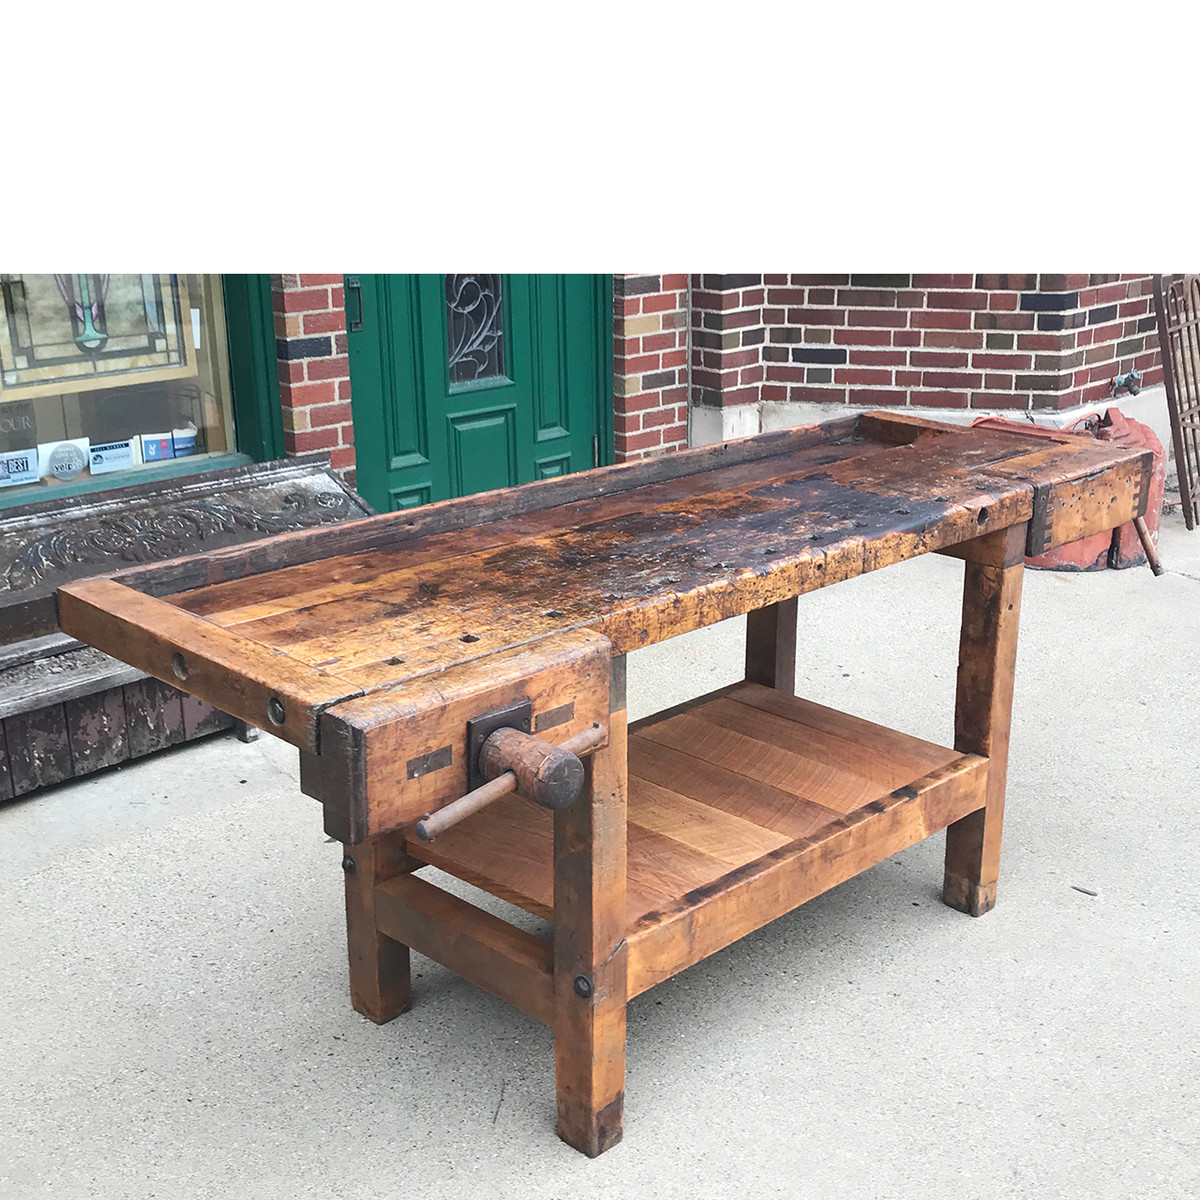 F18038 - Antique Maple Industrial Style Carpenters Workbench